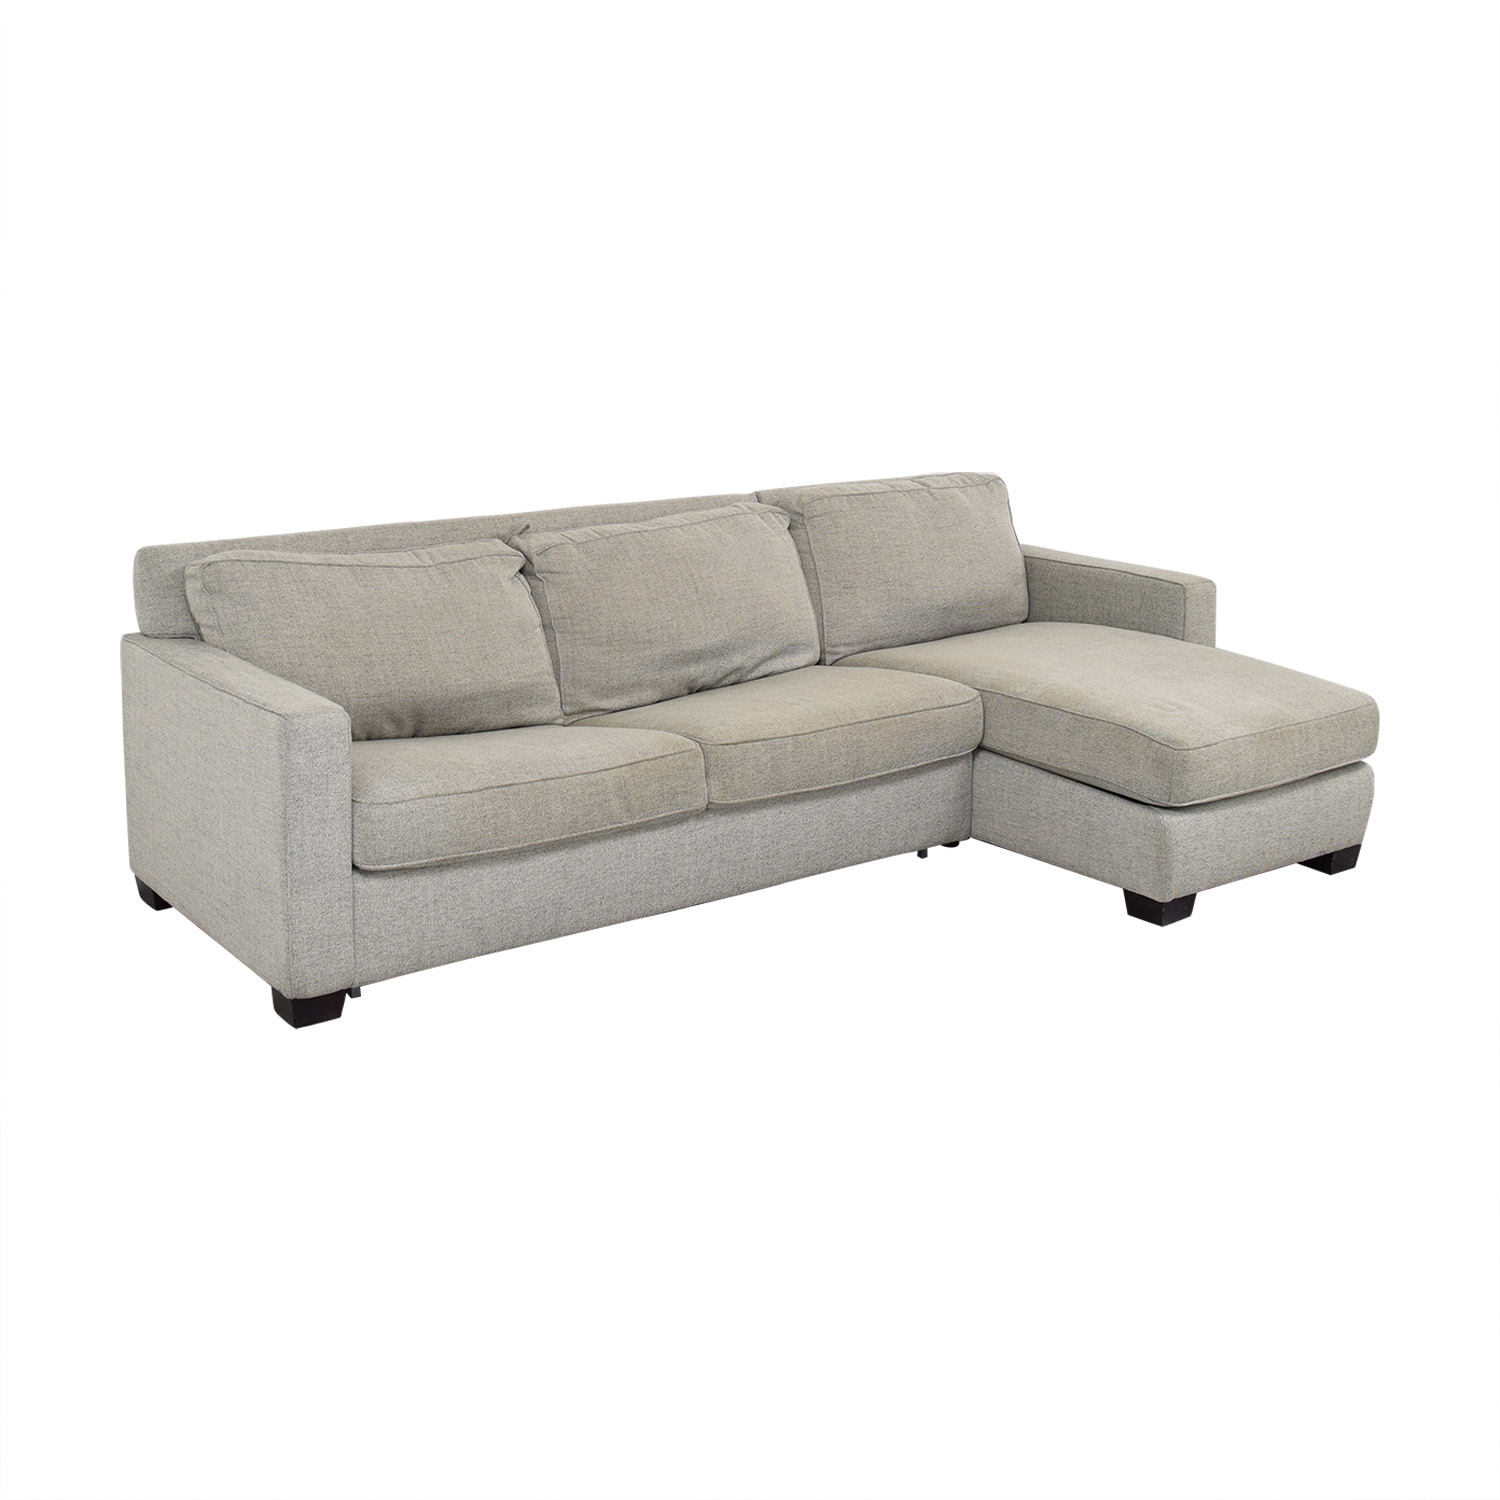 Wondrous 43 Off West Elm West Elm Henry Two Piece Full Sleeper Sectional With Storage Sofas Alphanode Cool Chair Designs And Ideas Alphanodeonline